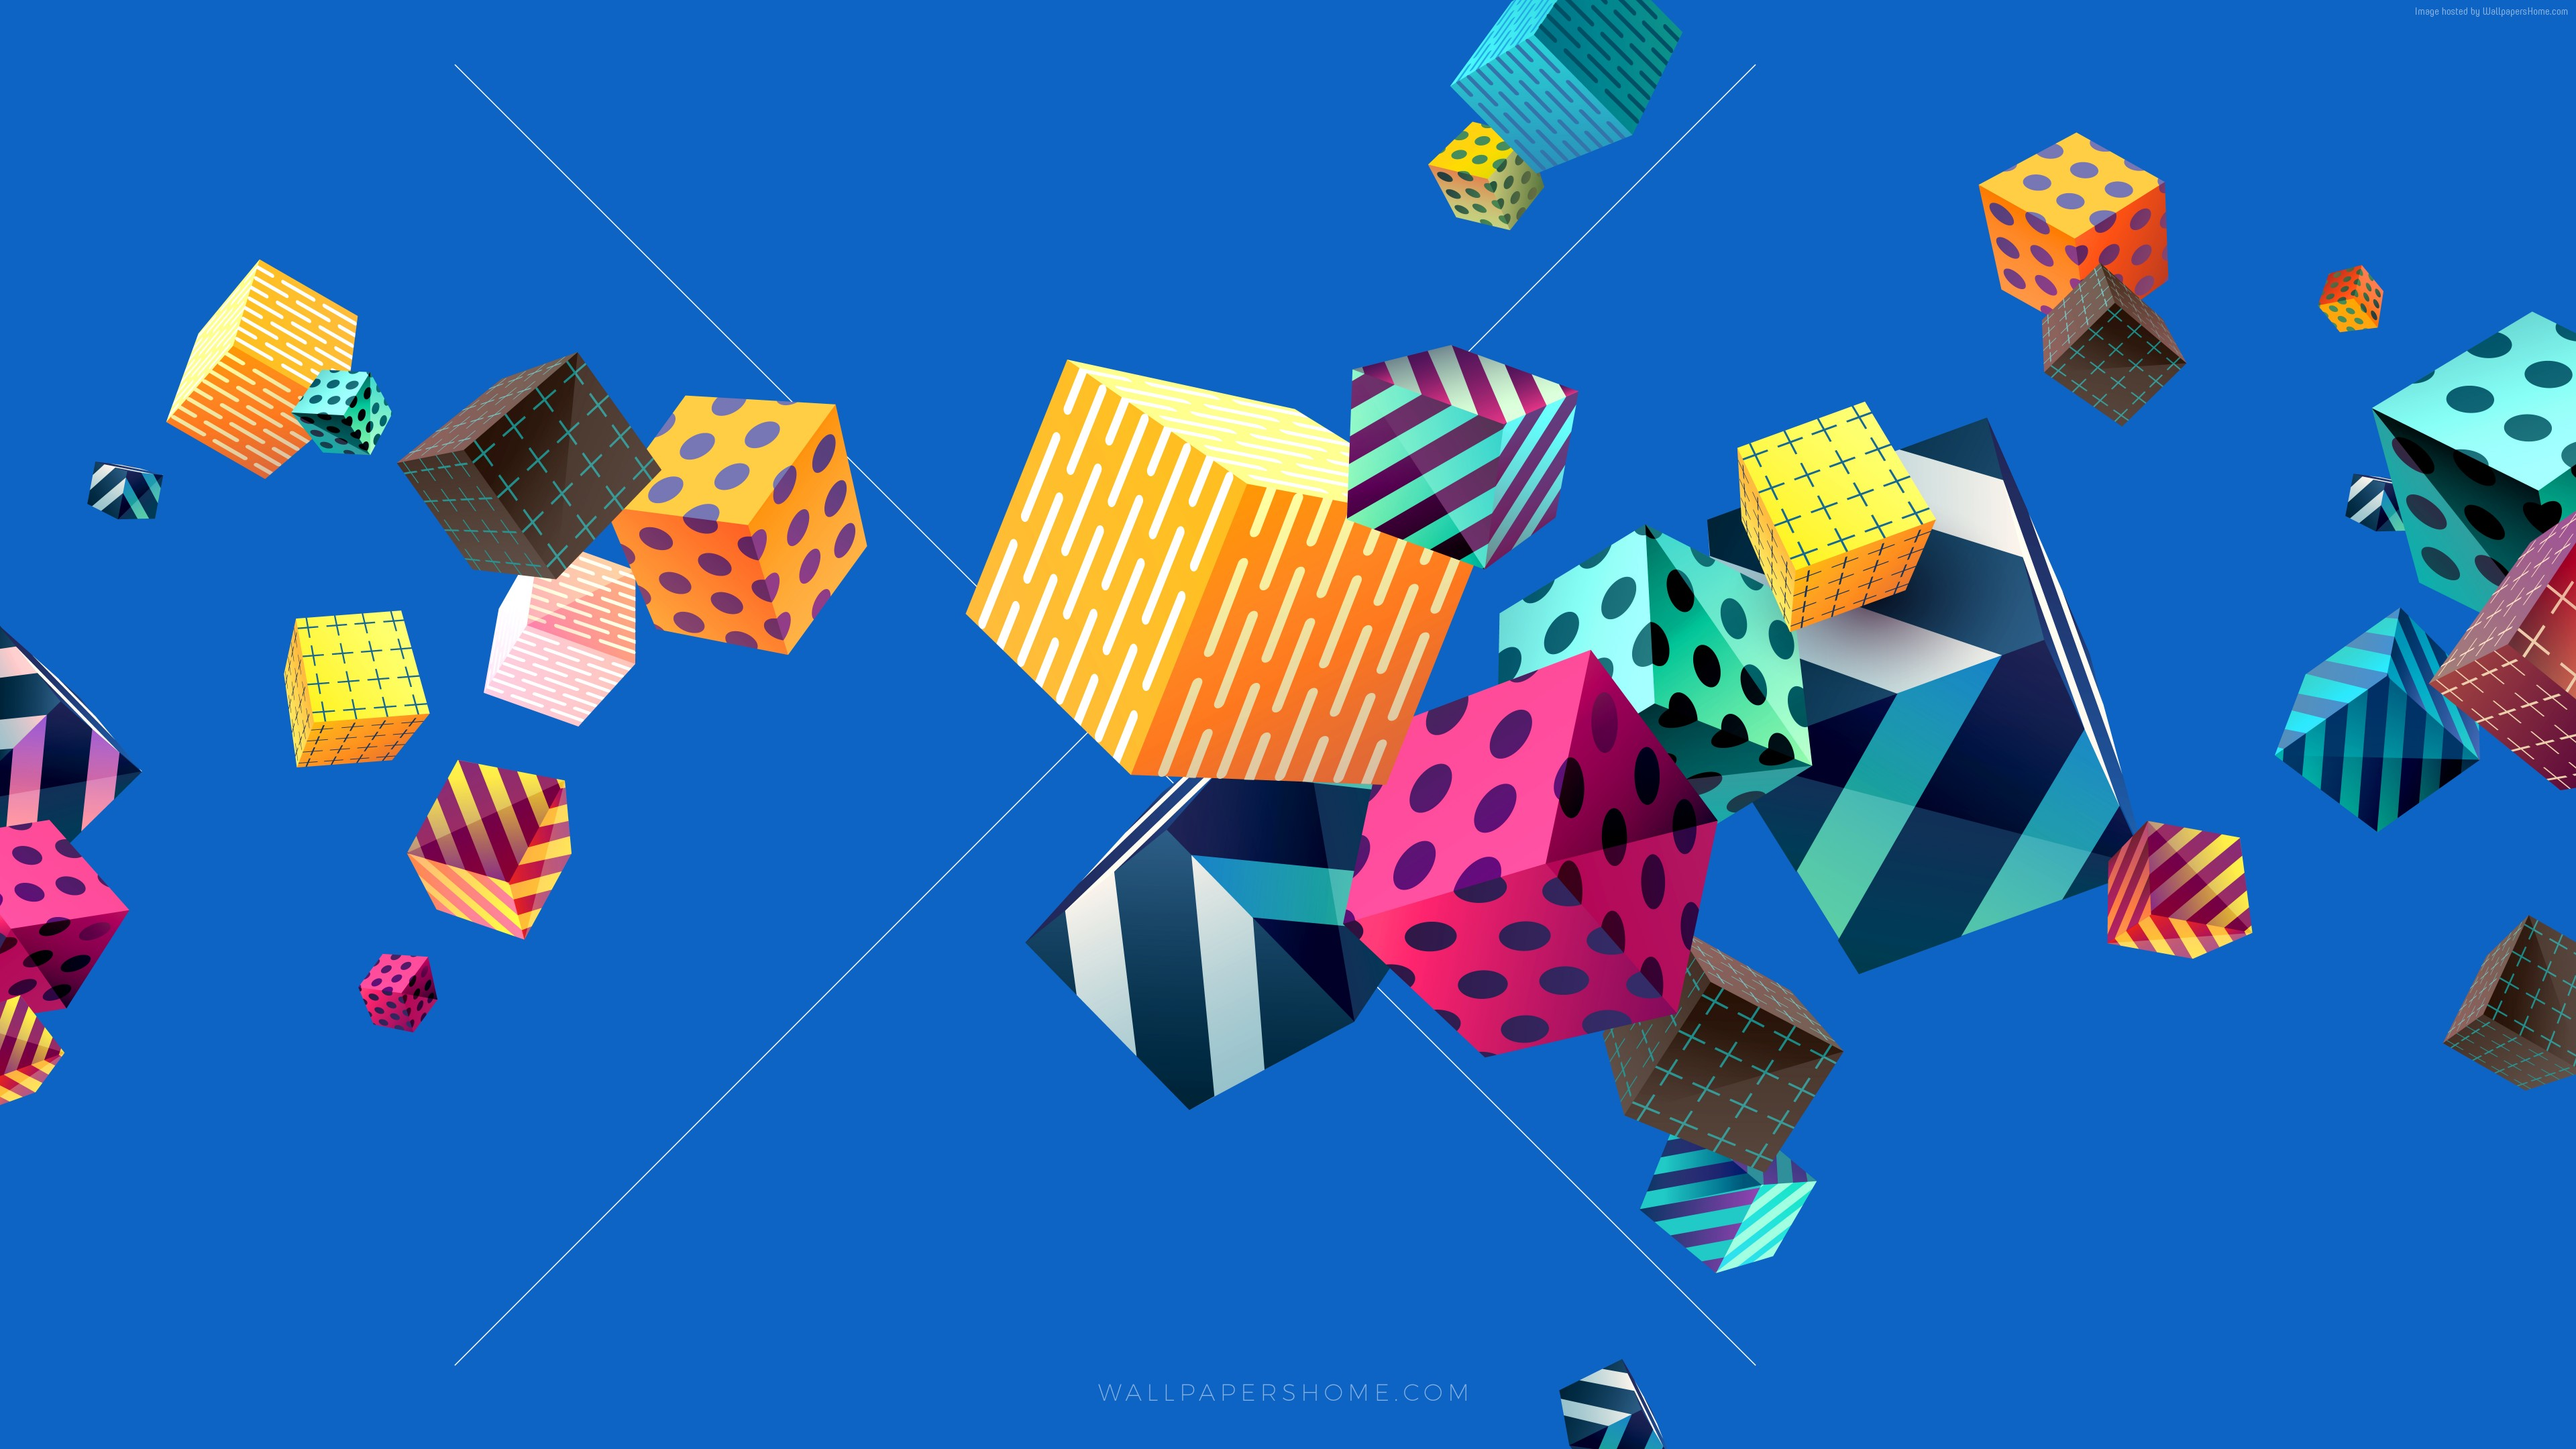 Cubes colorful wallpaper download high resolution 4k wallpaper - 4k colorful wallpaper ...